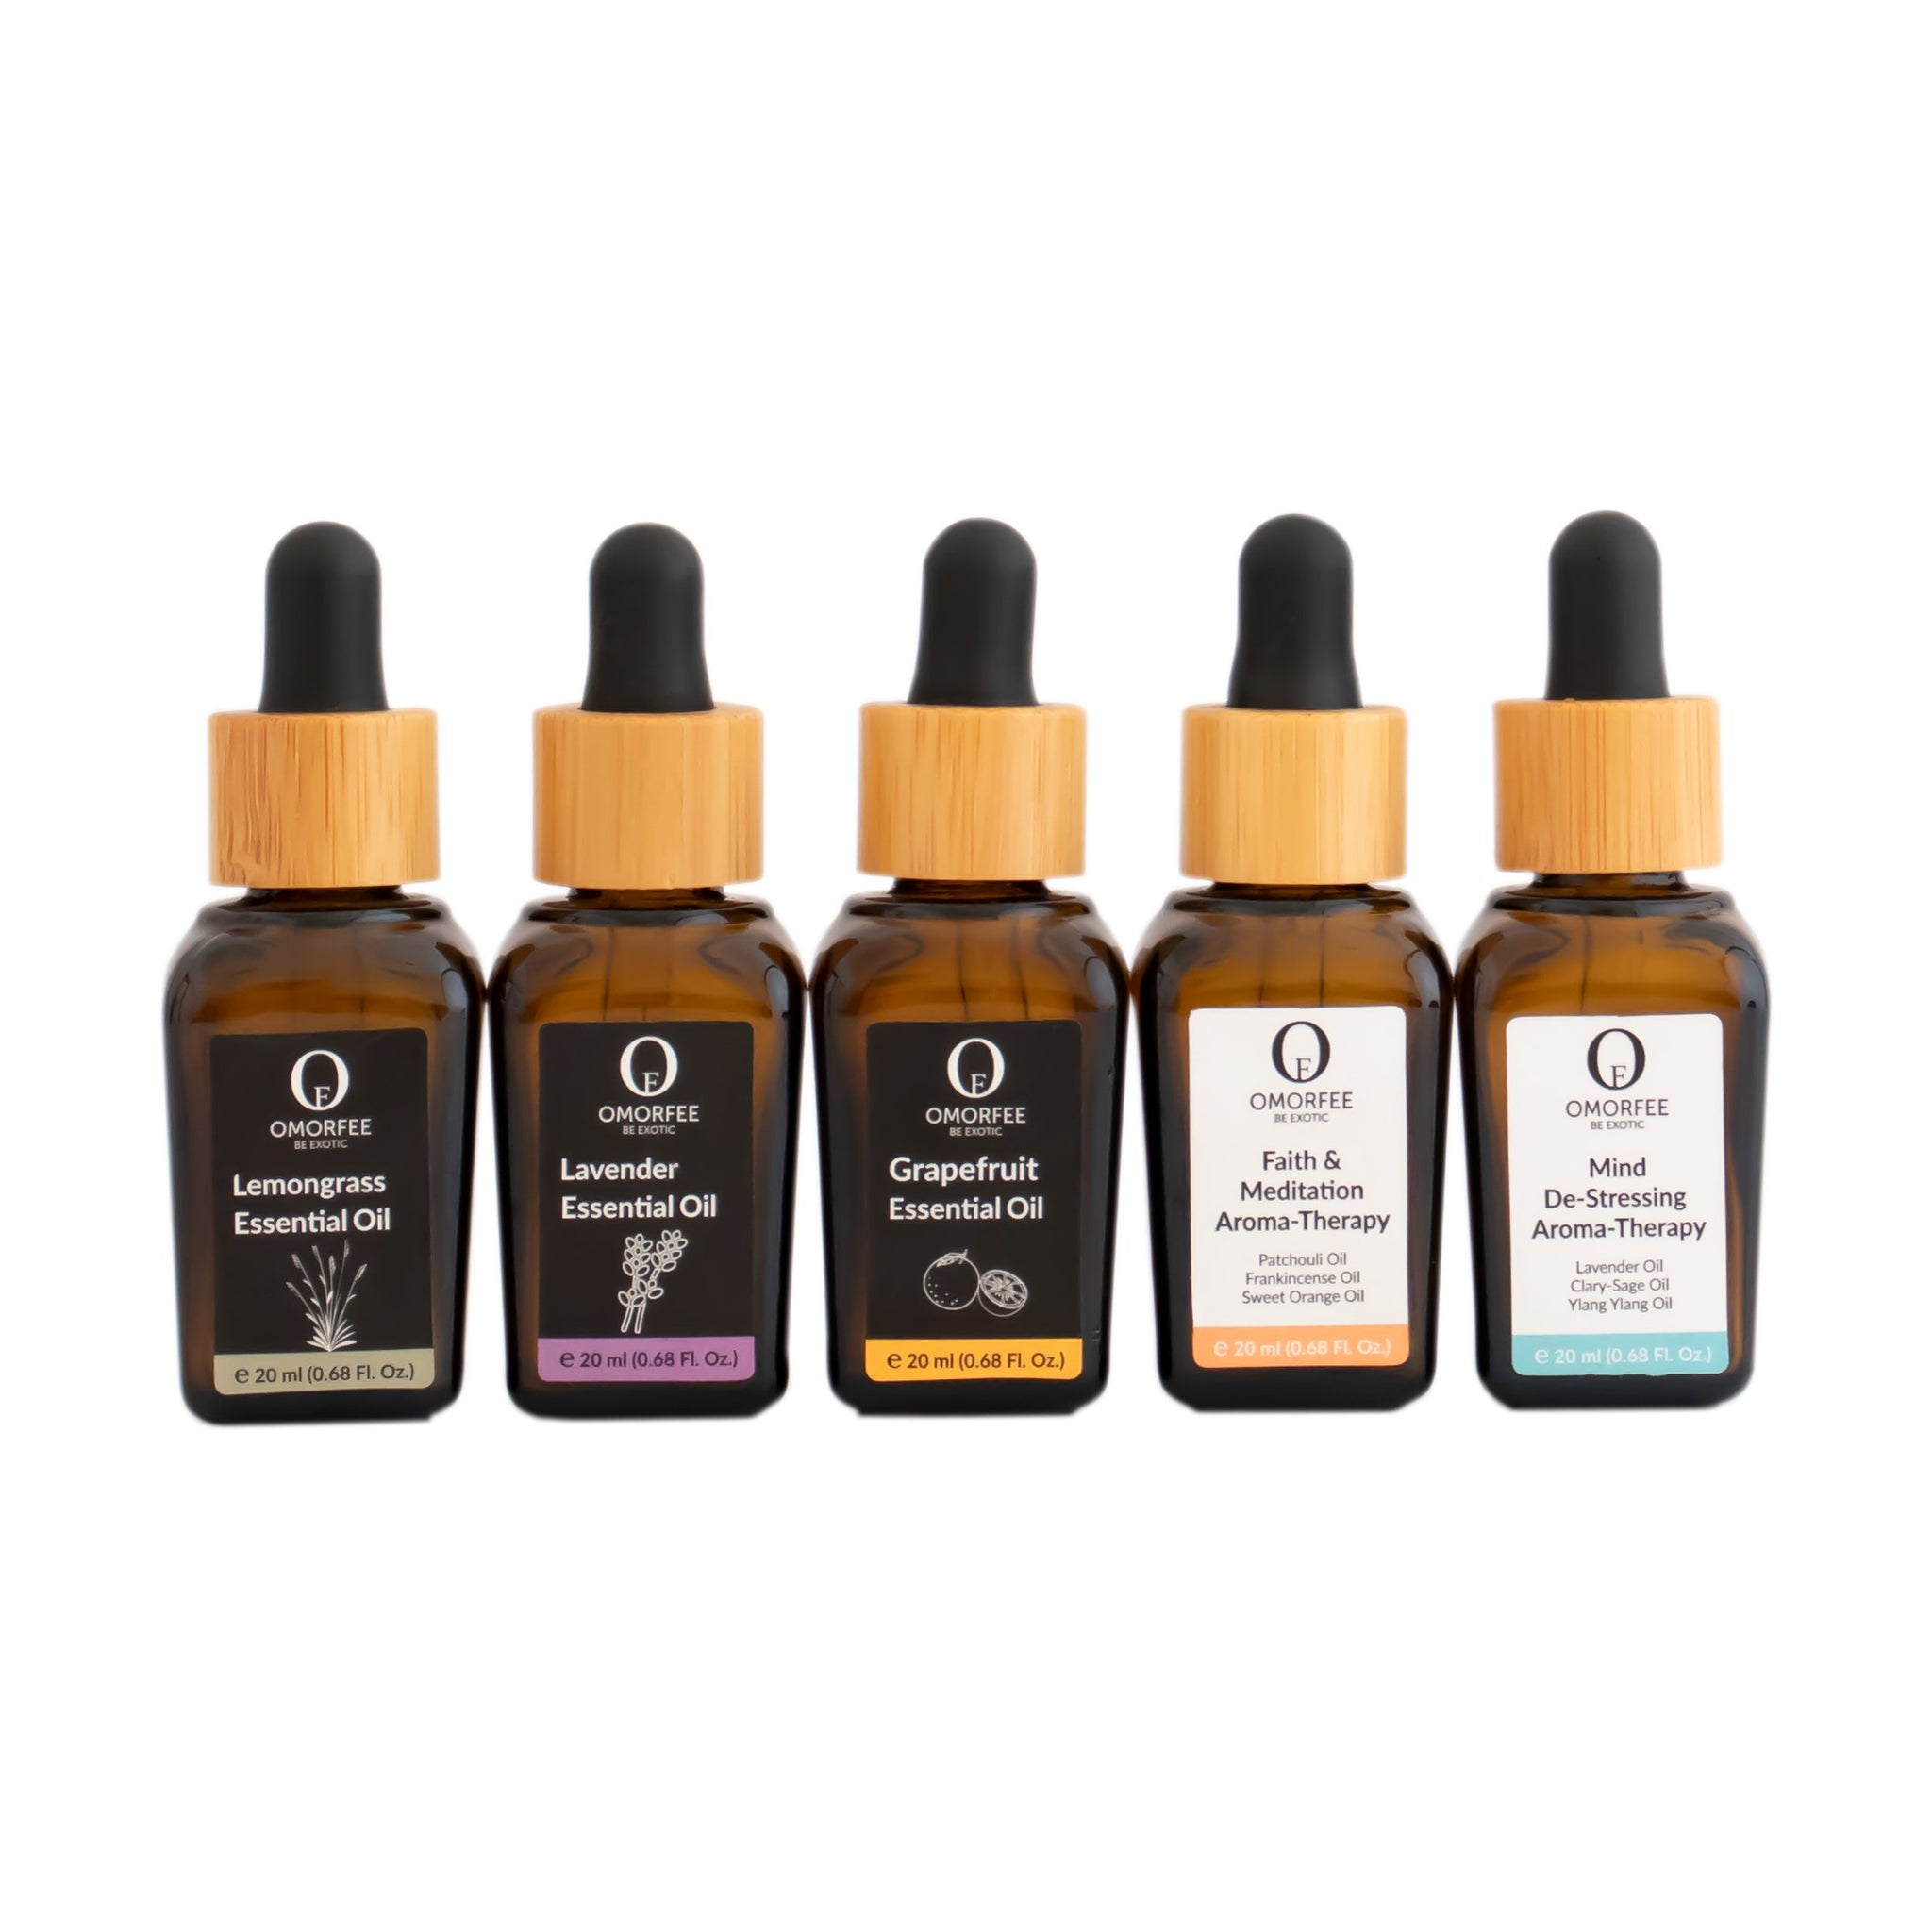 omorfee-holistic-care-assortment-lemongrass-essential-oil-lavender-essential-oil-grapefruit-essential-oil